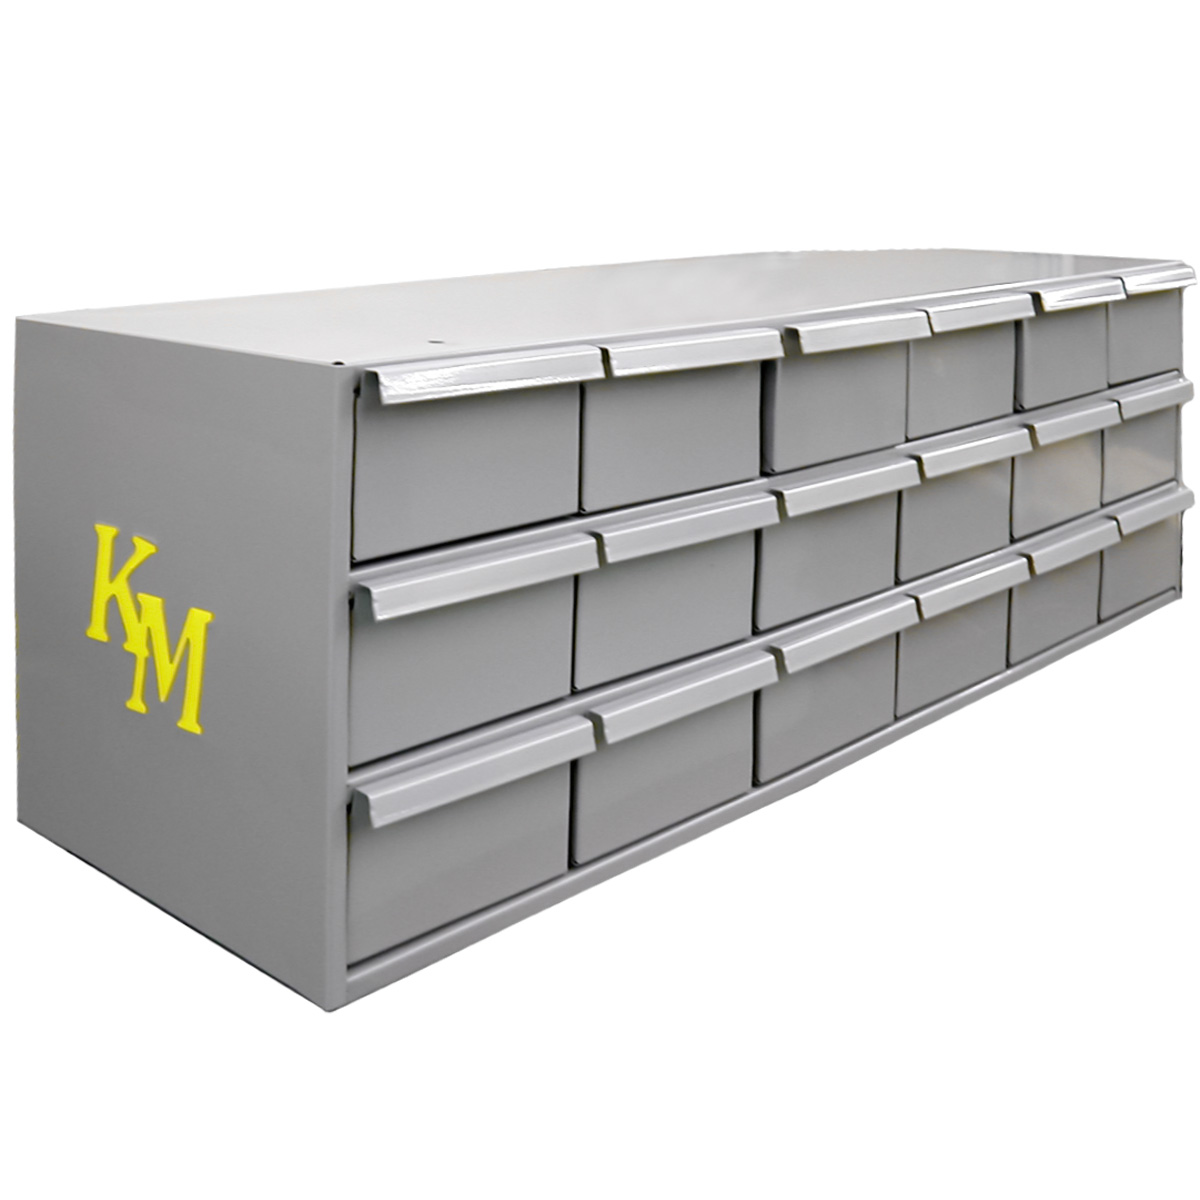 drawers the filing drawer artopex classeurs cabinets gallery download cabinet file en with products storage metal